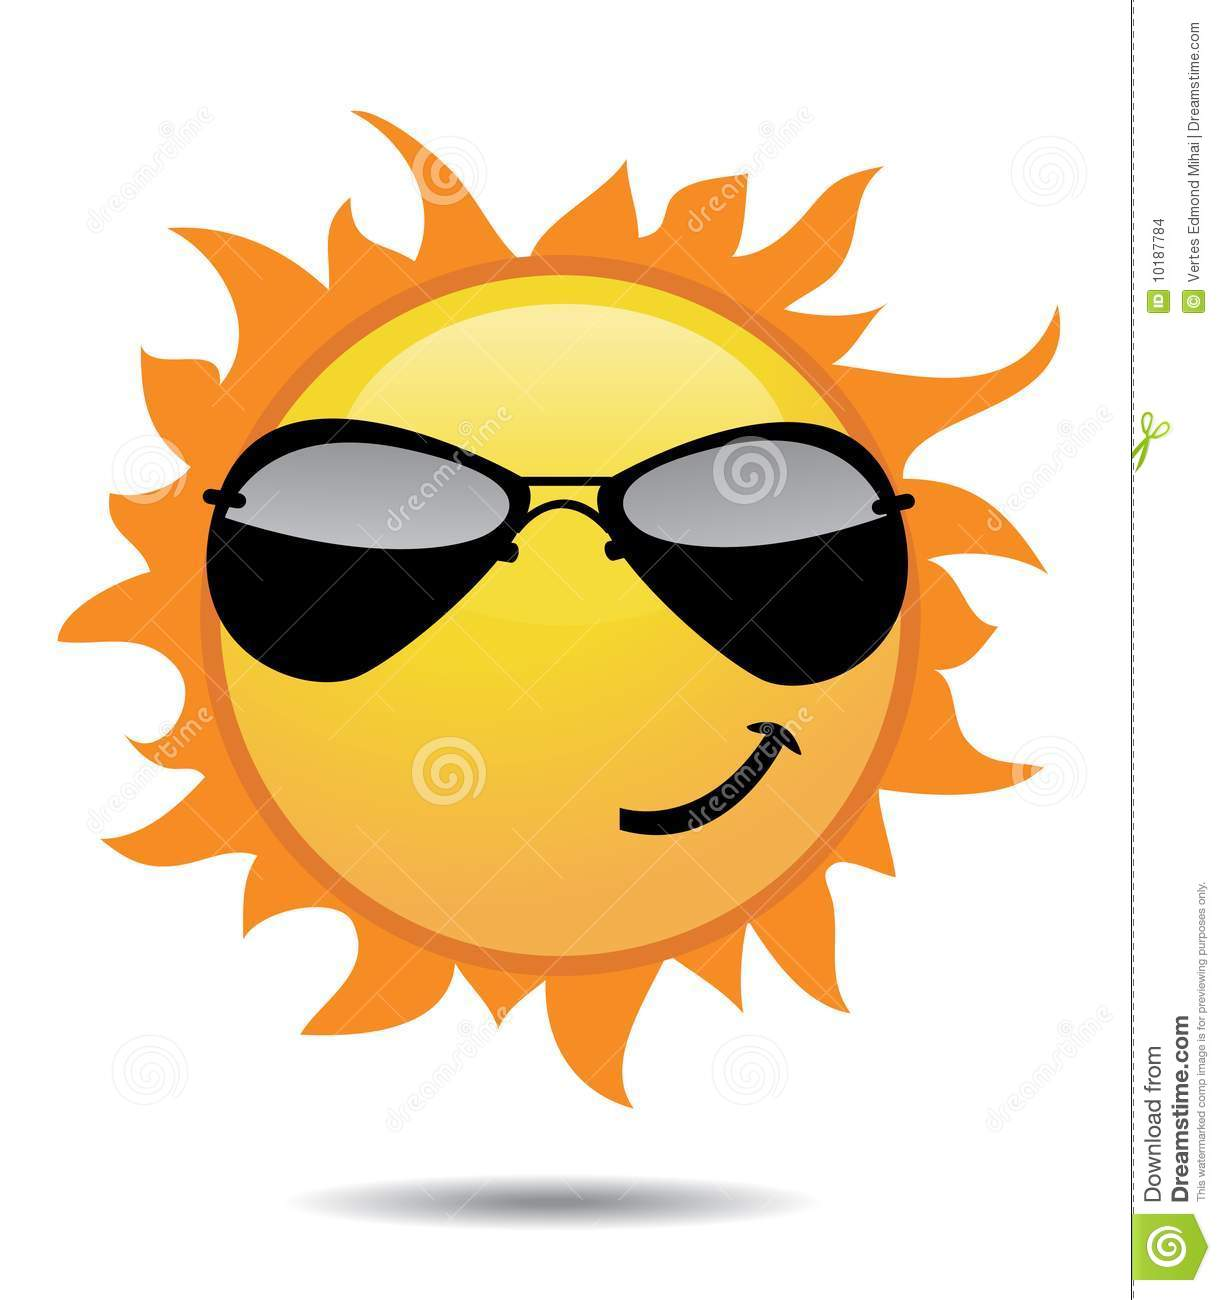 Shiny Sun Icons Stock Images - Image: 10187784